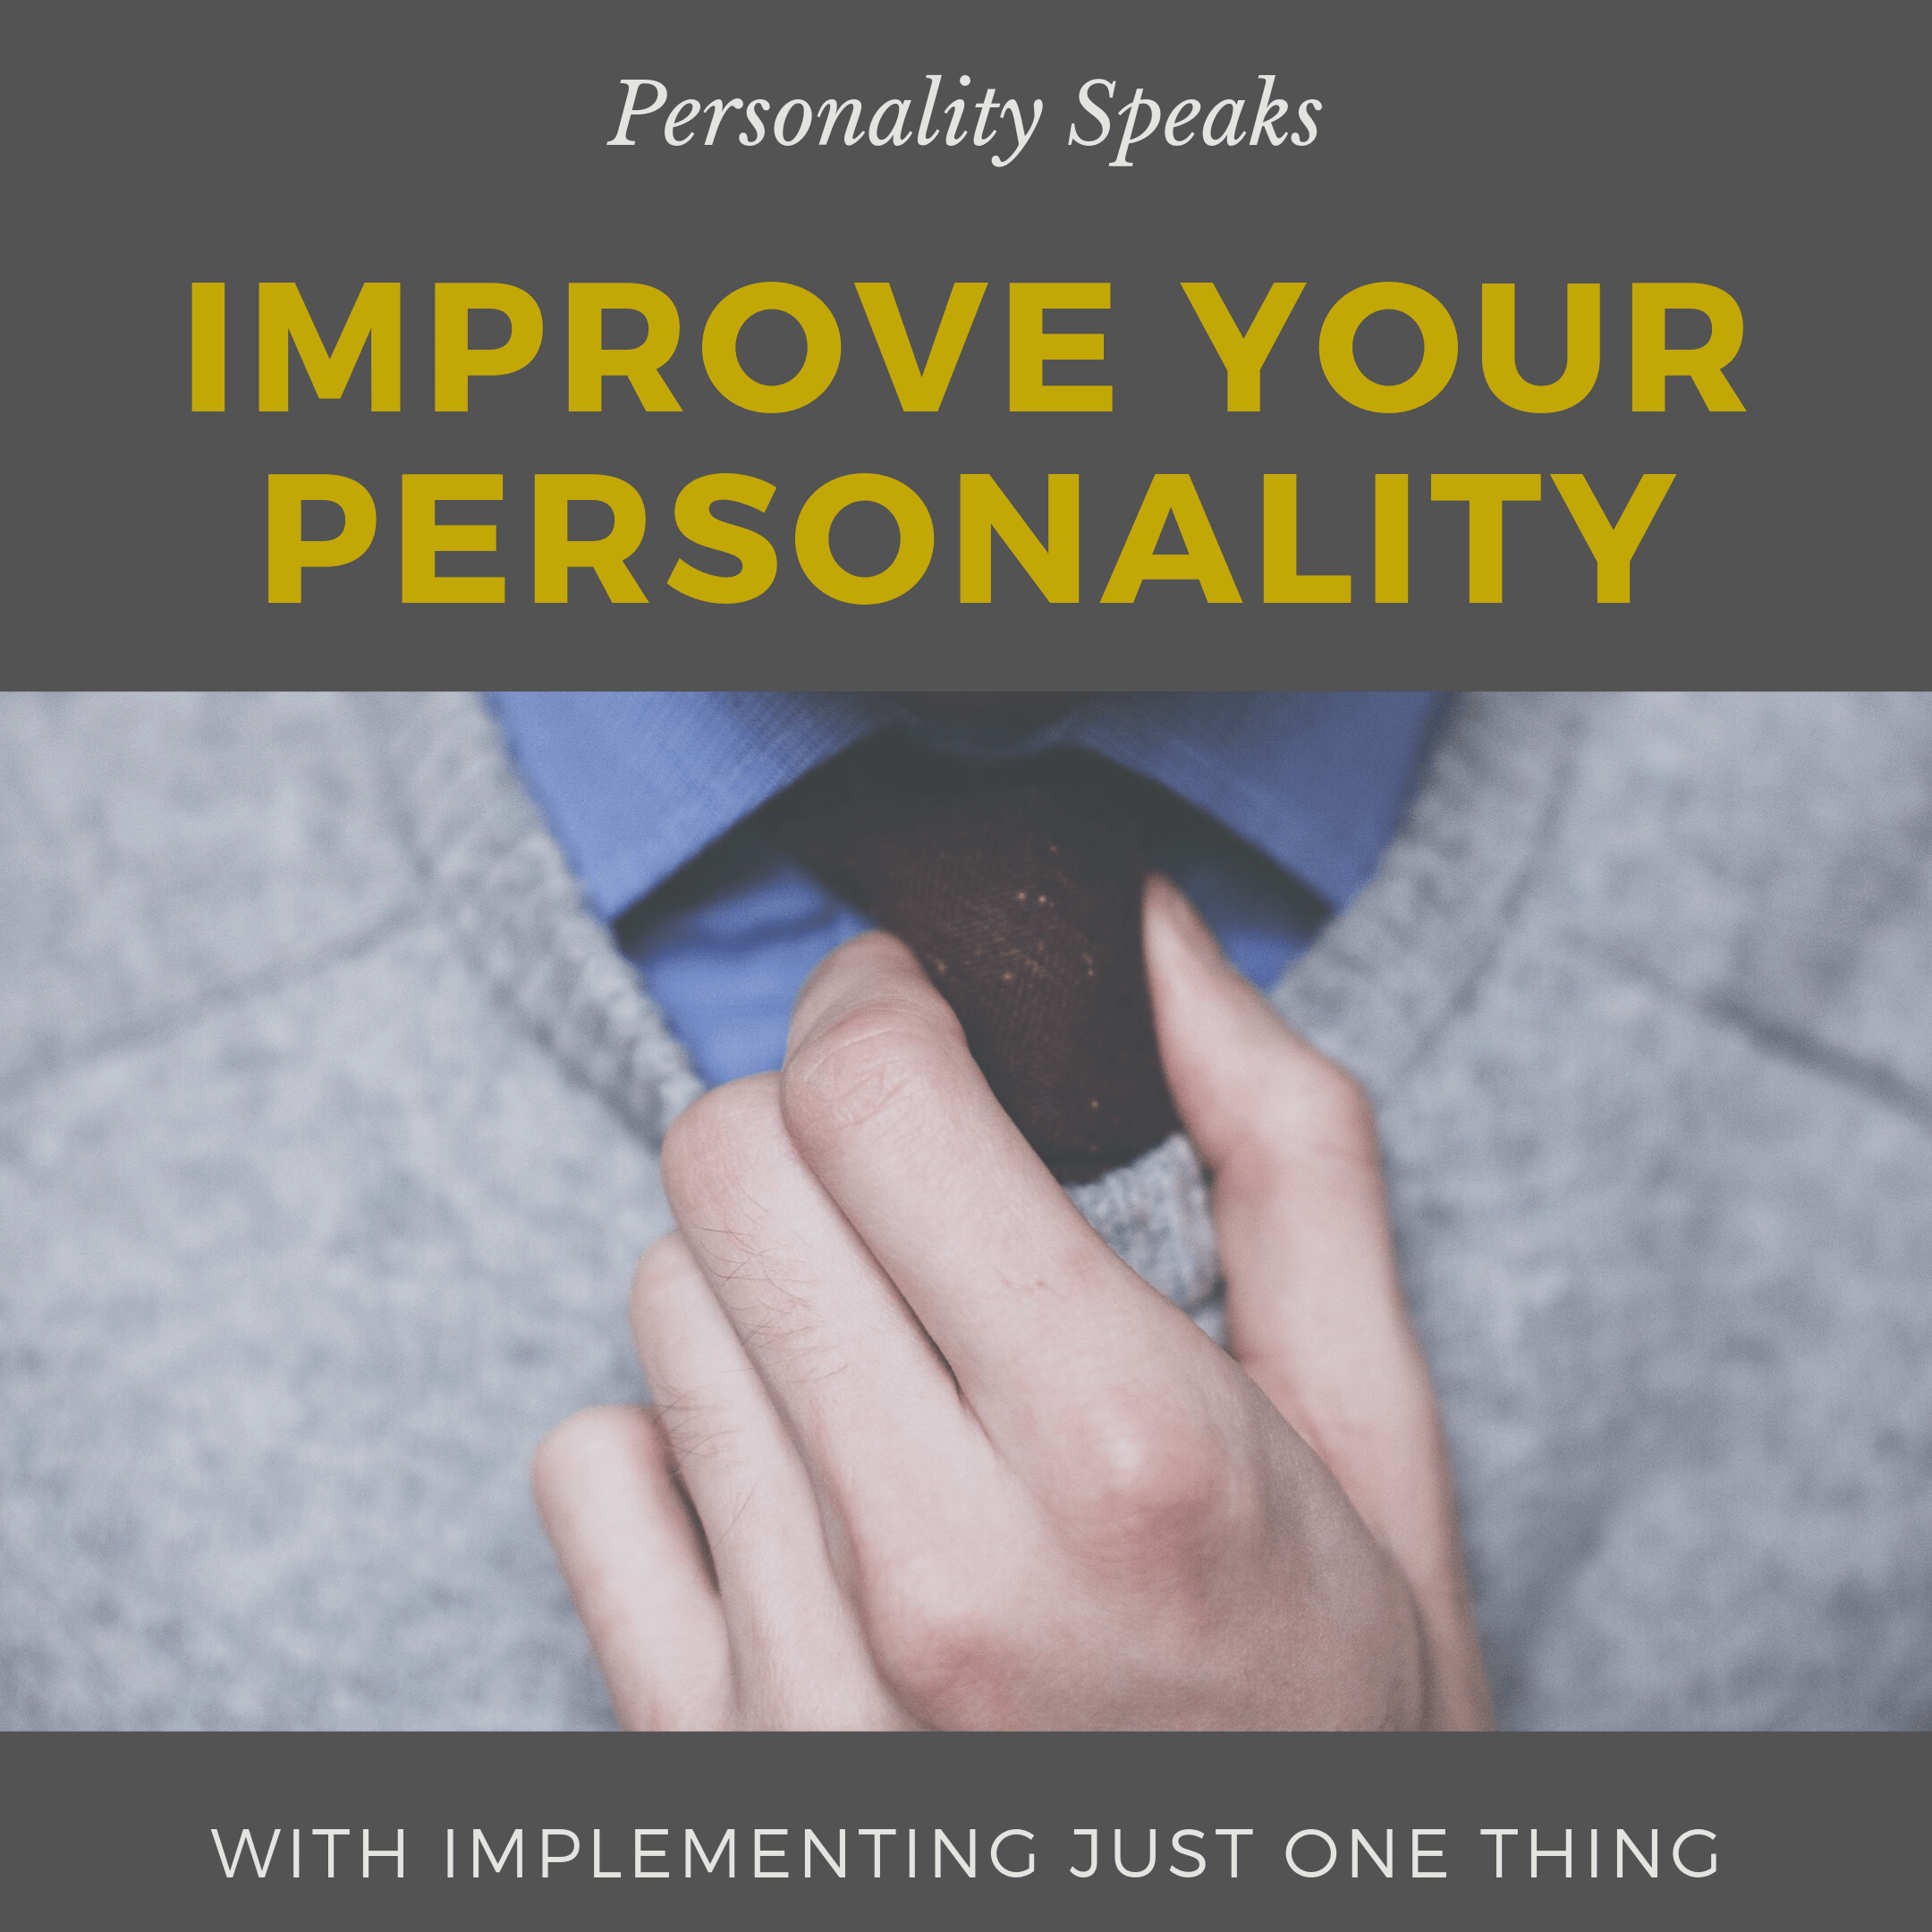 improve your personality